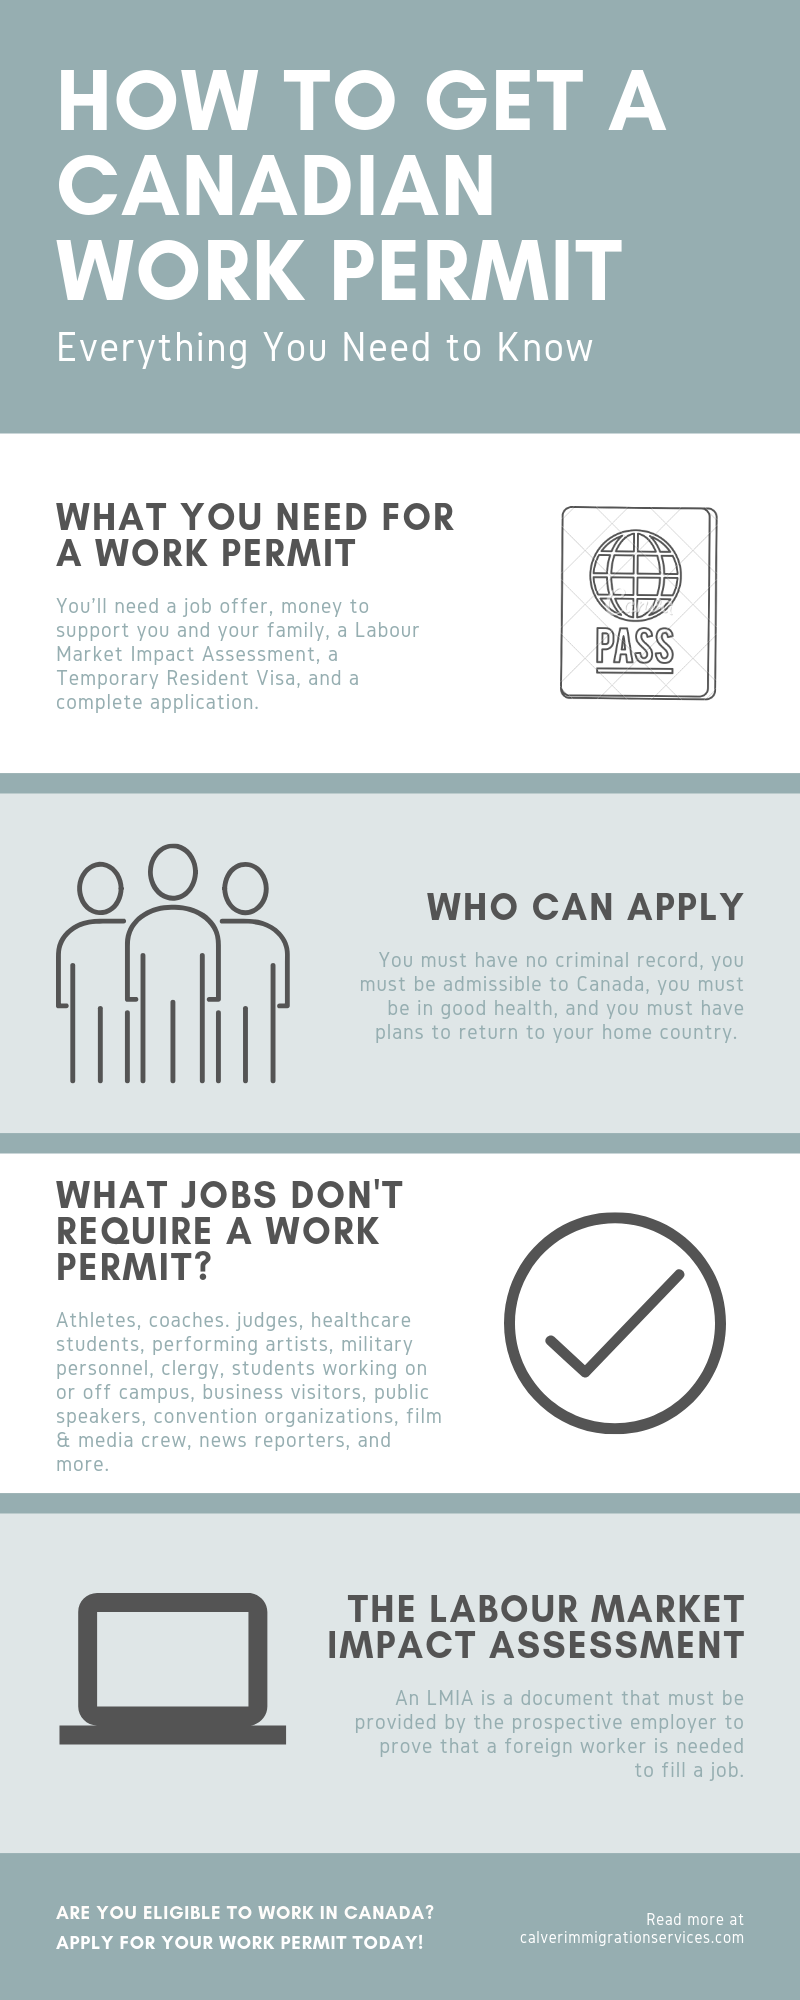 Applying for a Canadian Work Permit How to apply, Work